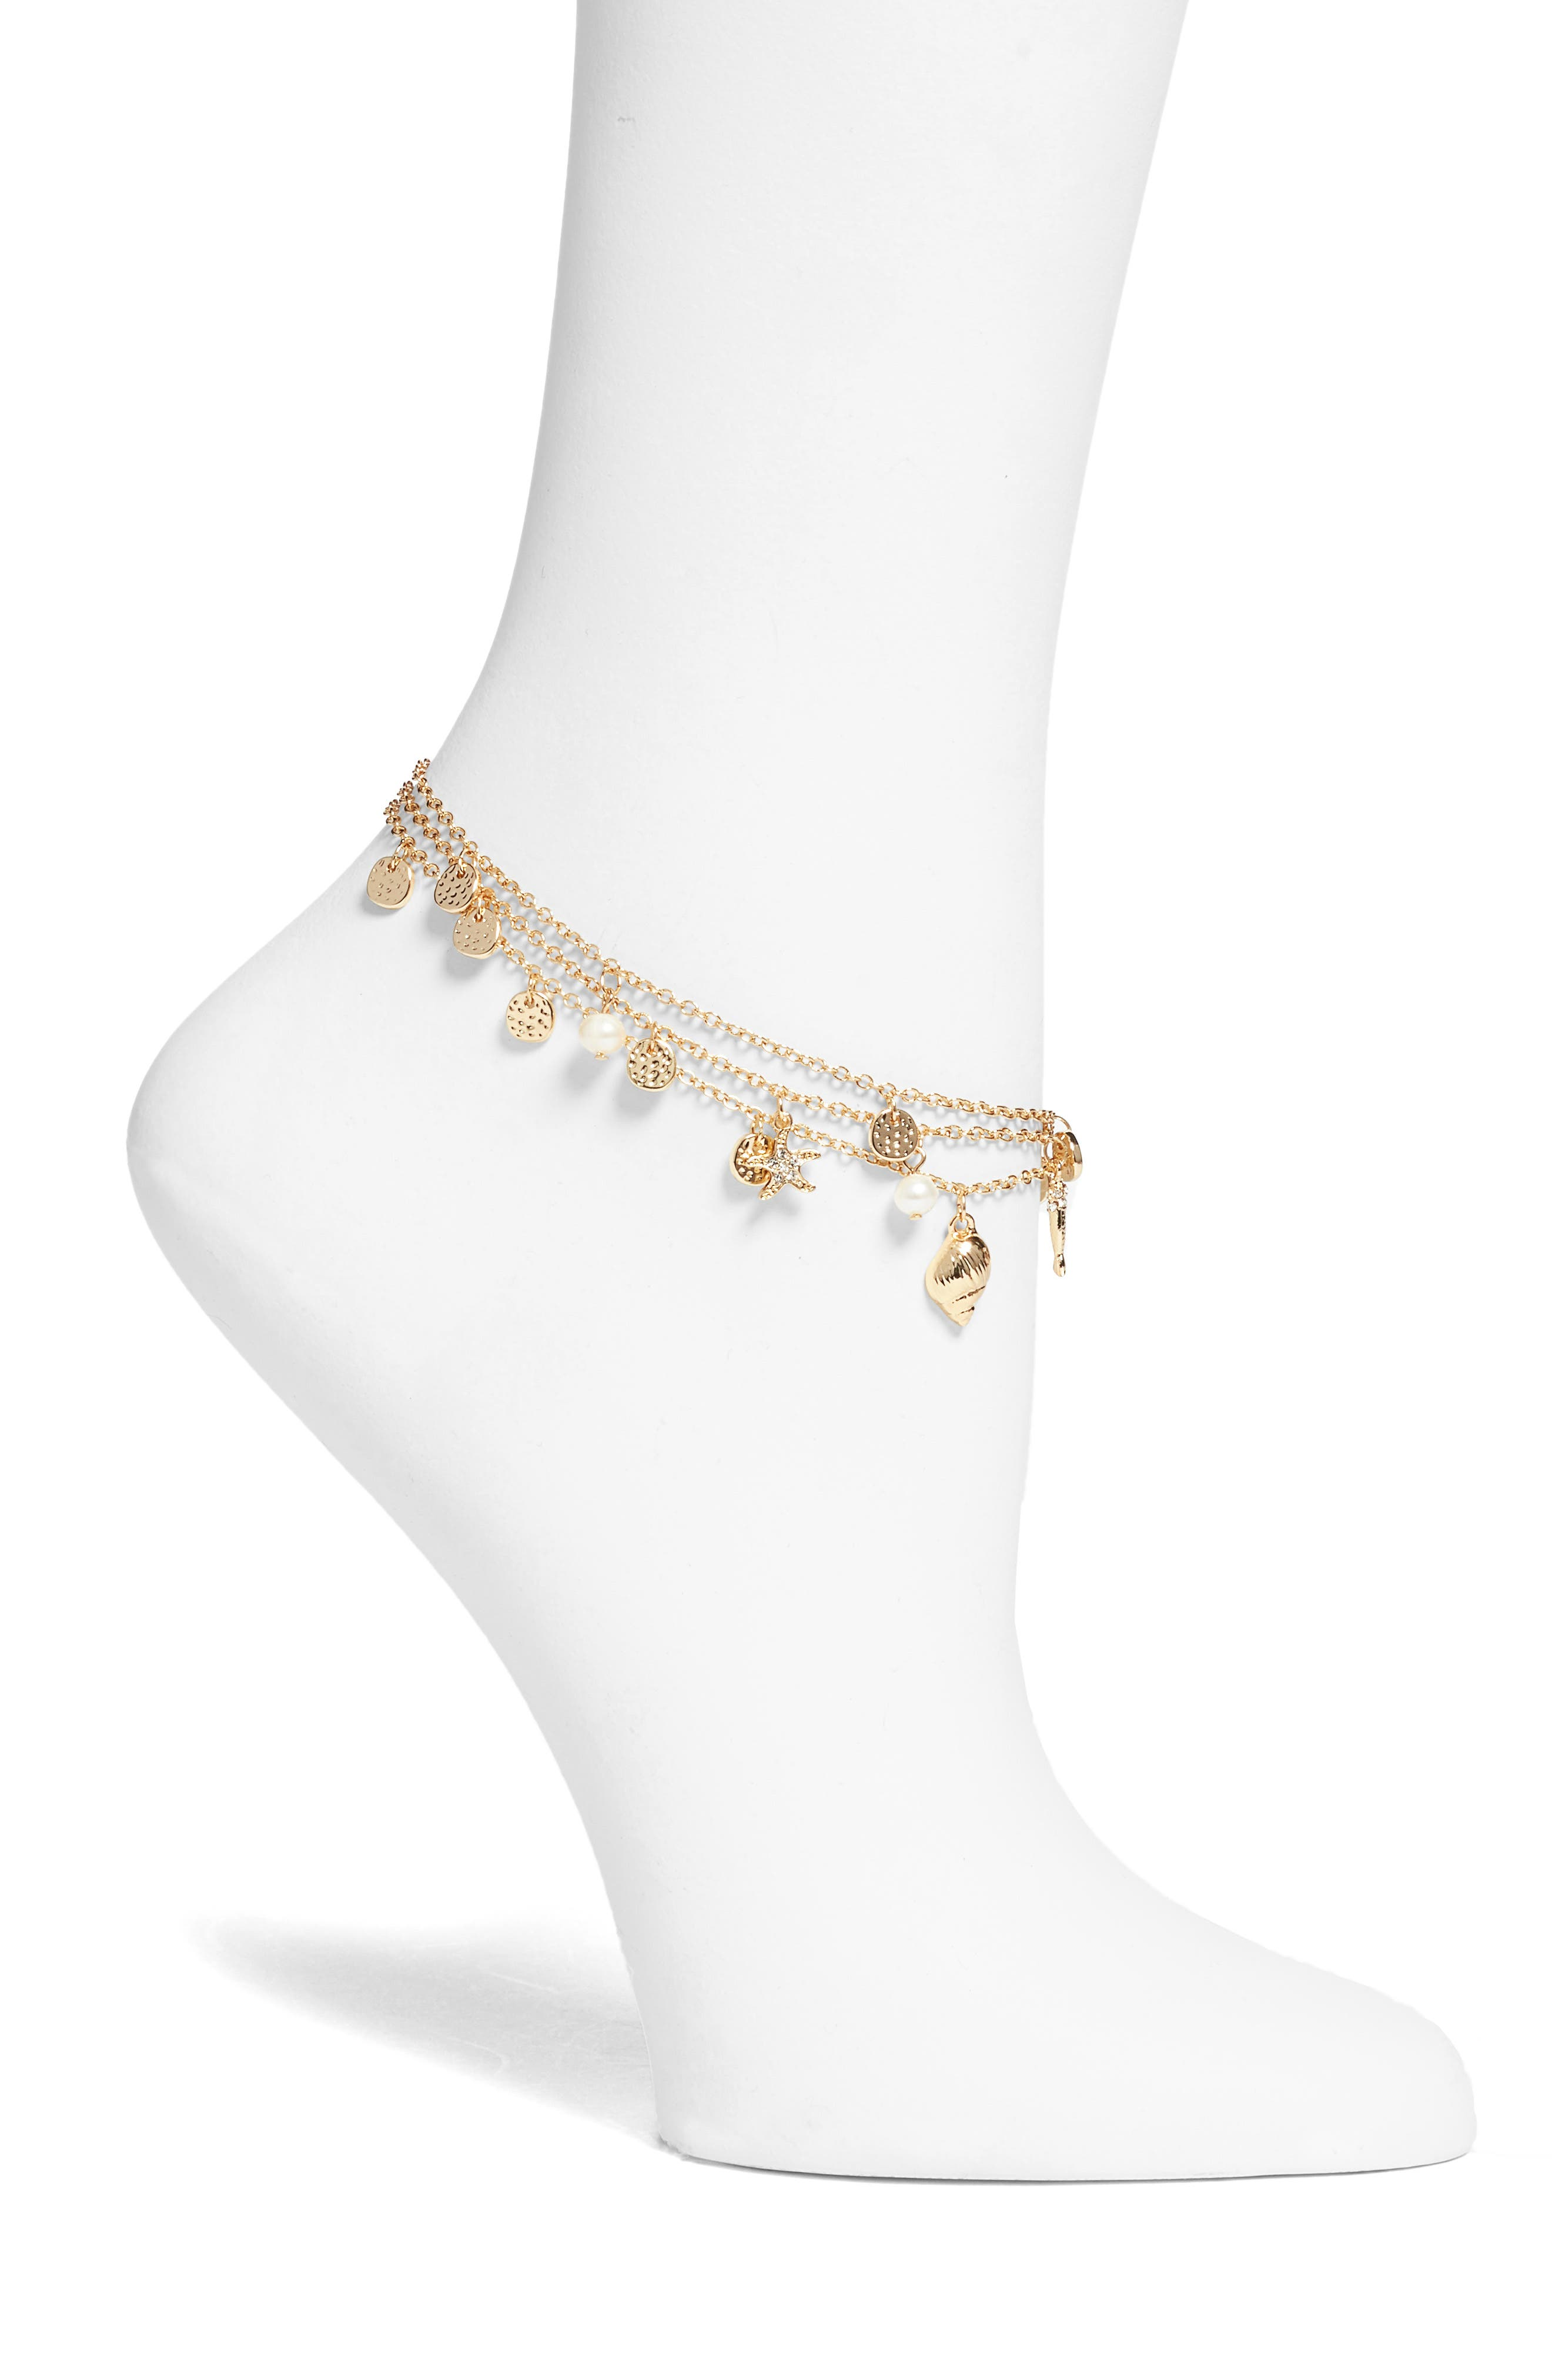 Lilly Pulitzer Sofishticated Anklet